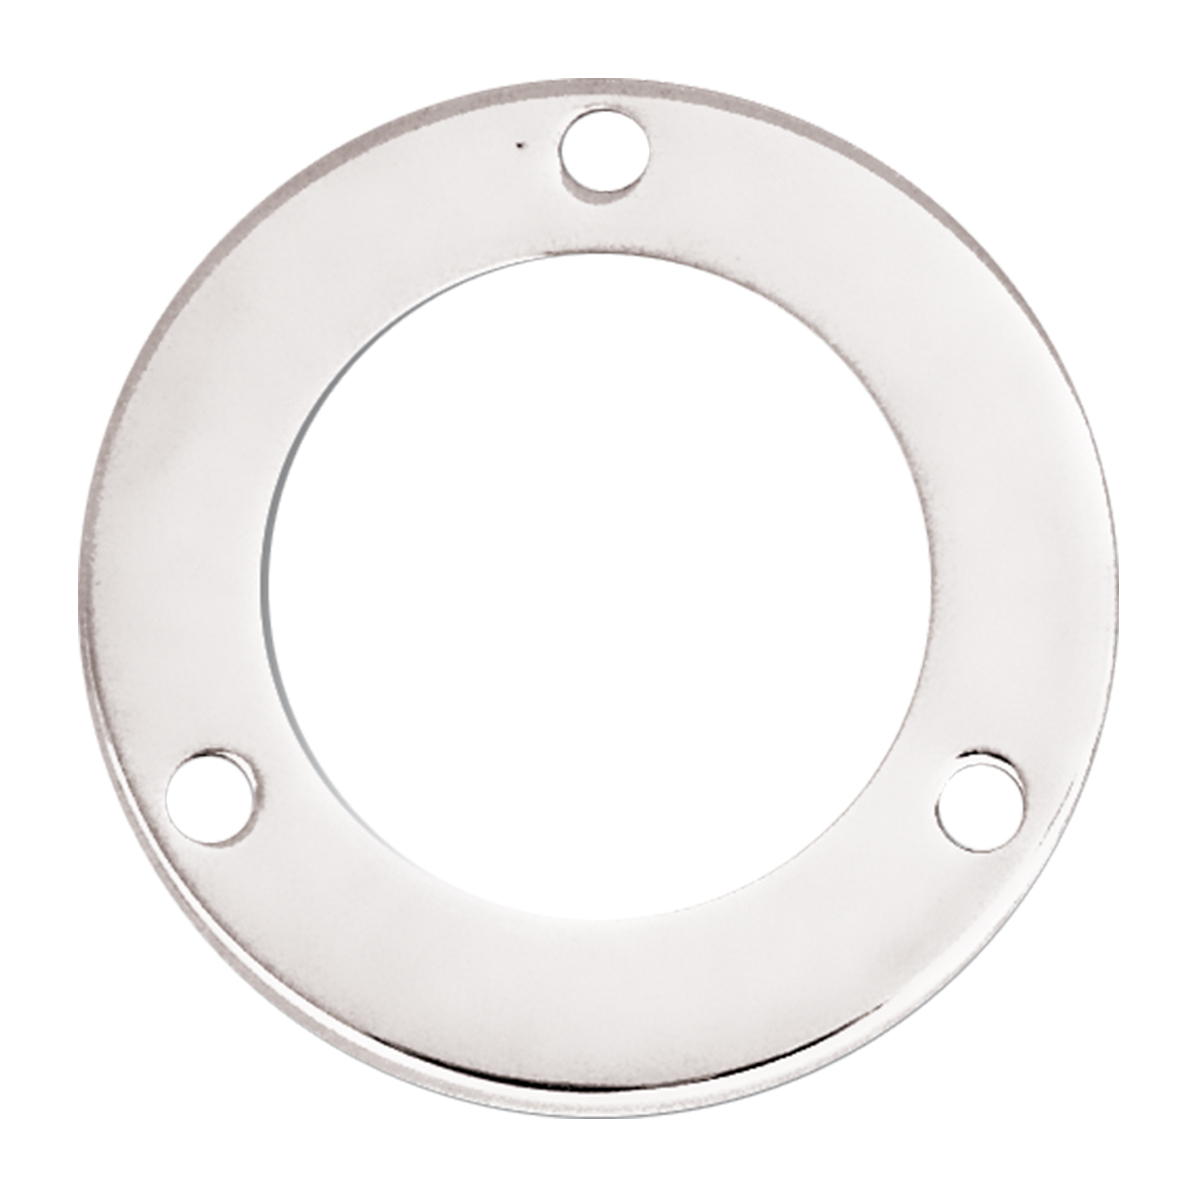 "87221 Stainless Steel Security Ring for 2"" Round Light"